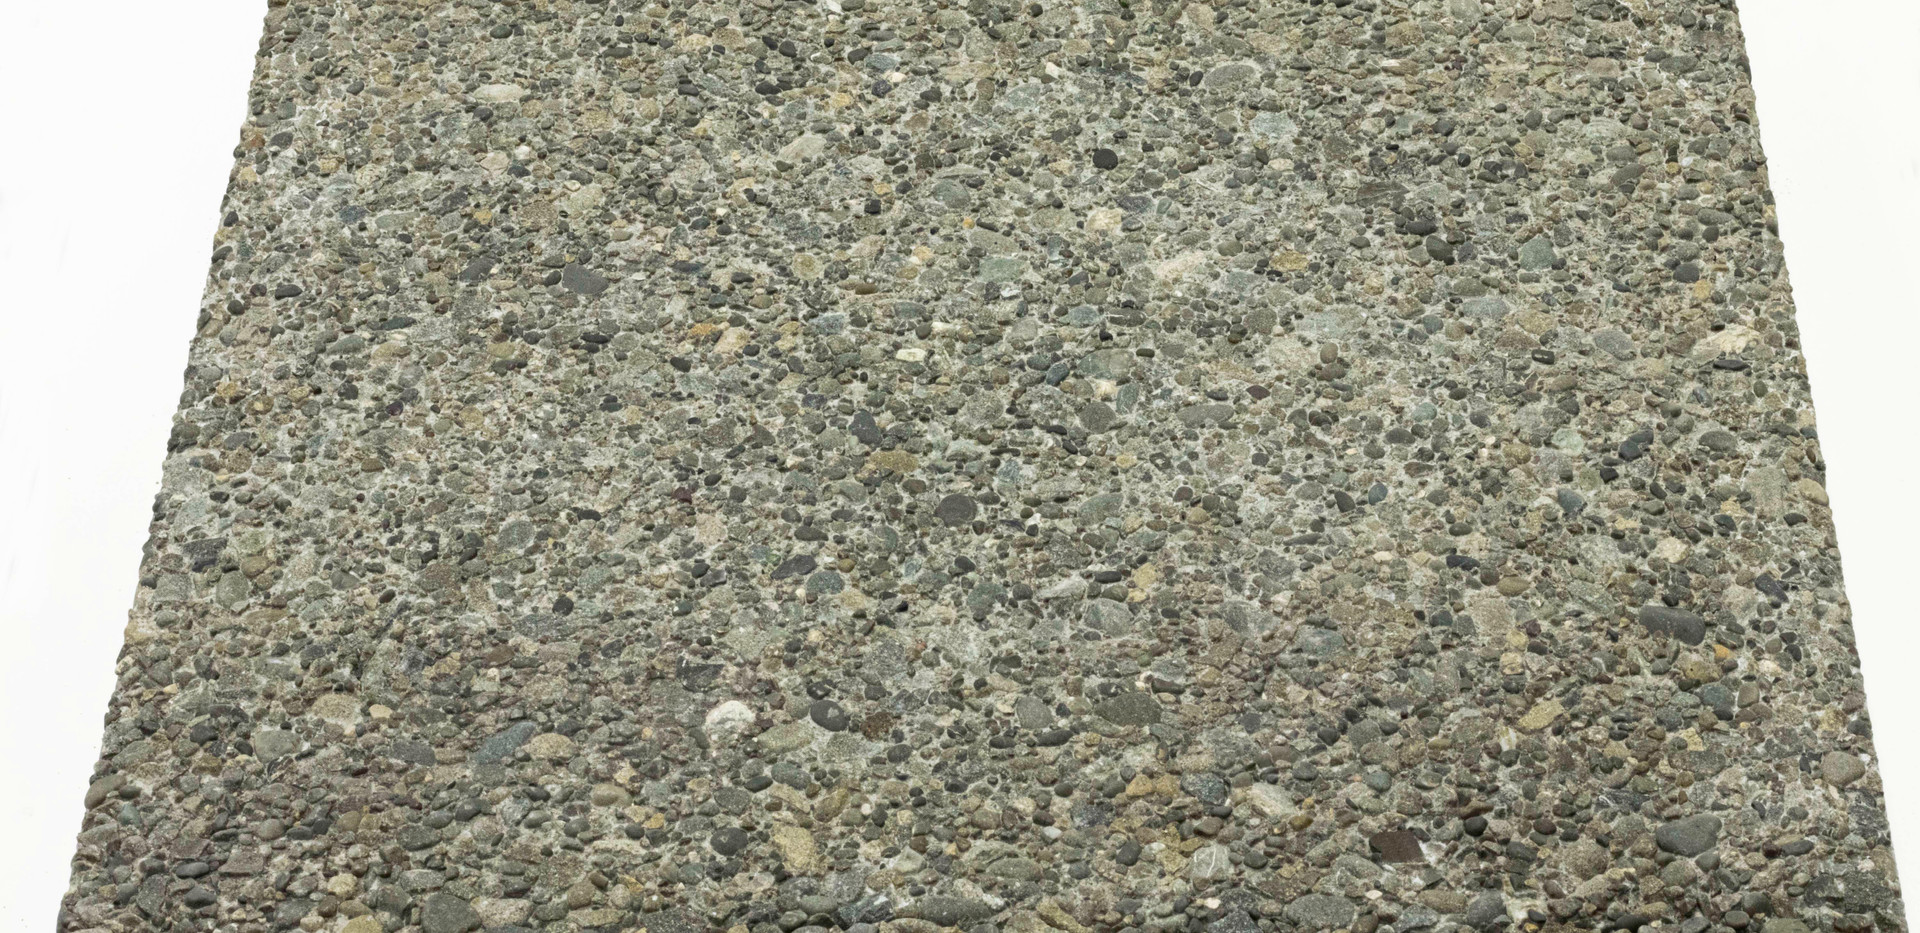 Exposed Aggregate Paver Concrete.jpg